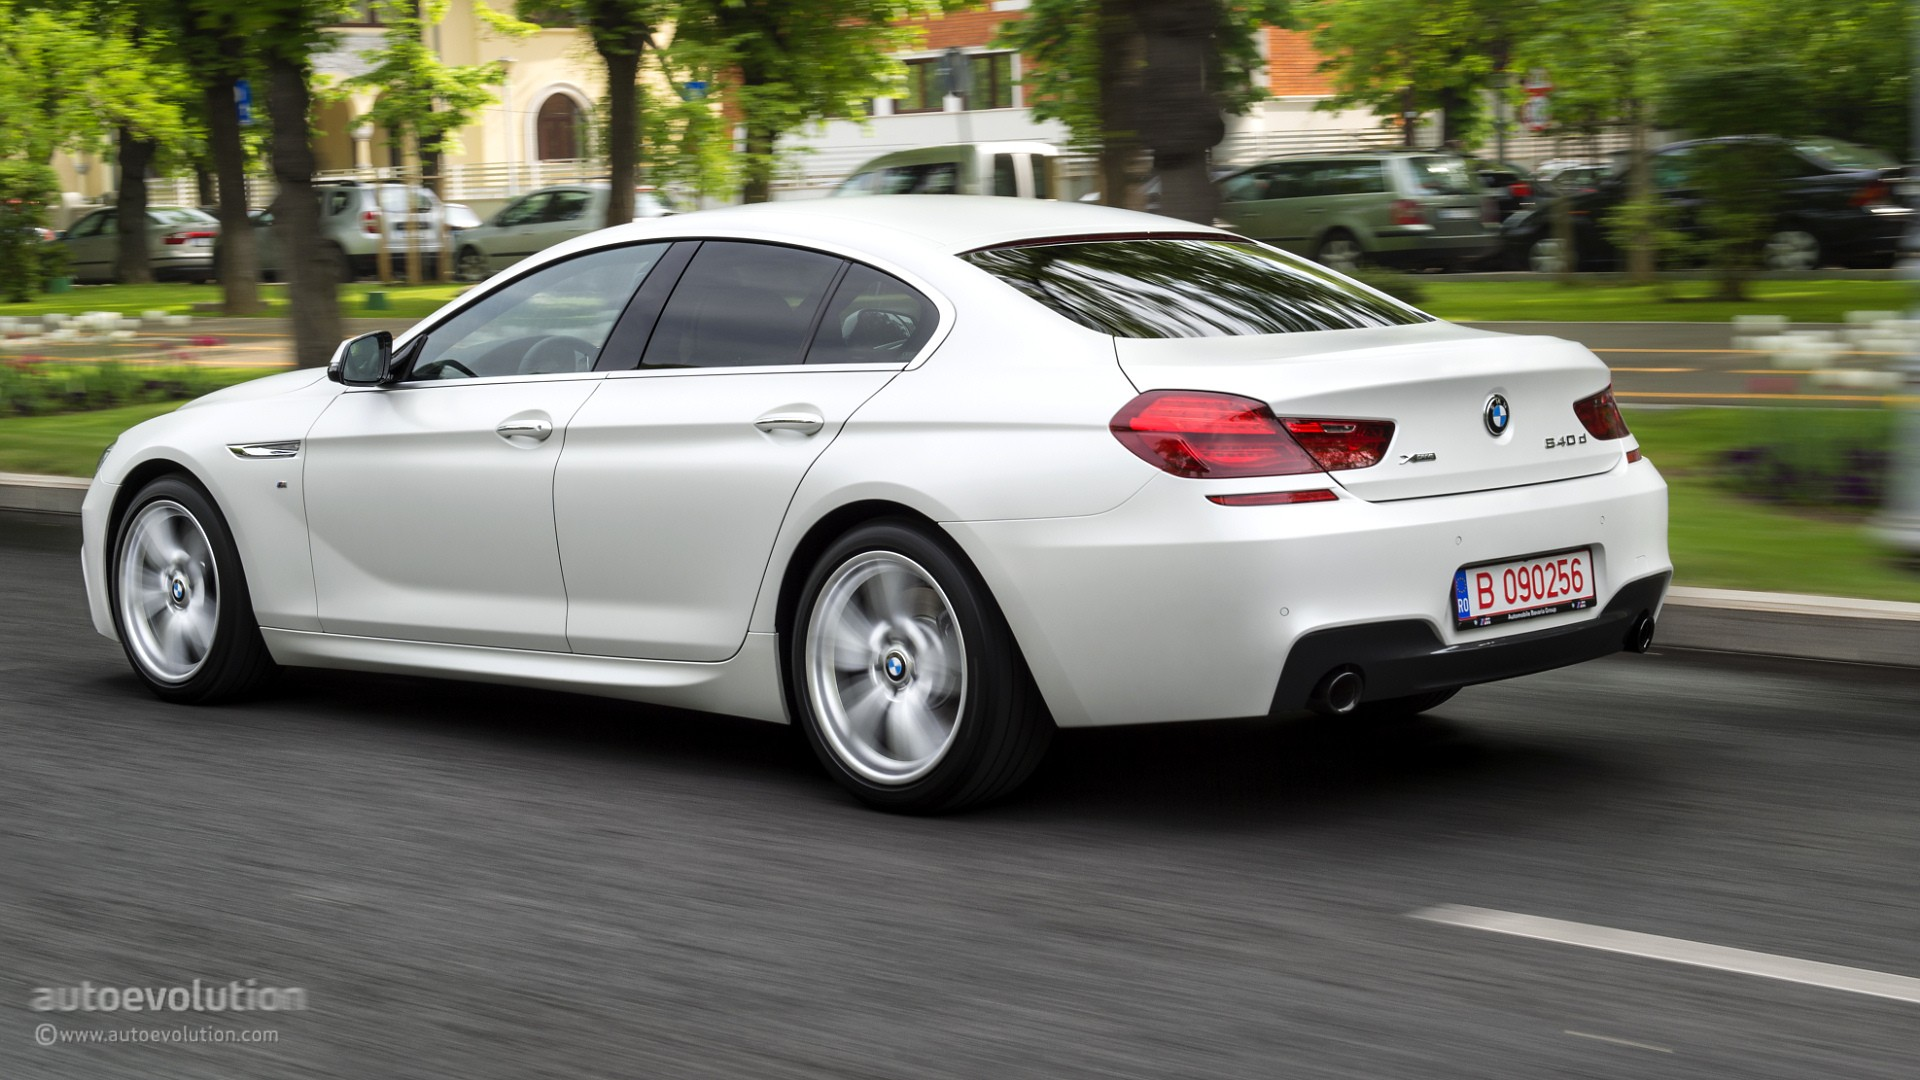 2016 BMW 6 Series Gran Coupe Review - autoevolution